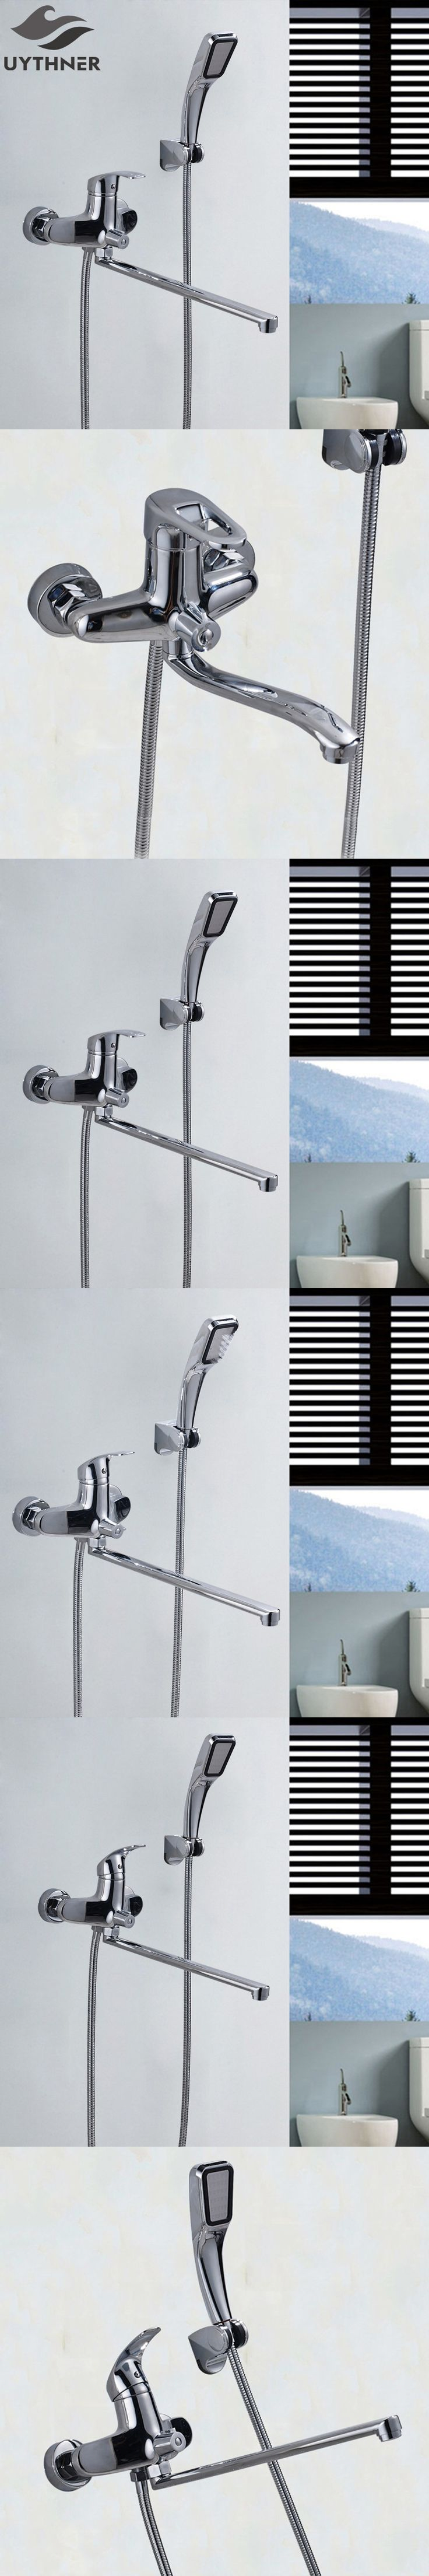 Uythner Nwe Style Solid Brass Bathroom Shower Faucet & Bathtub Faucet Wall Mounted Mixer Tap Chrome Finish